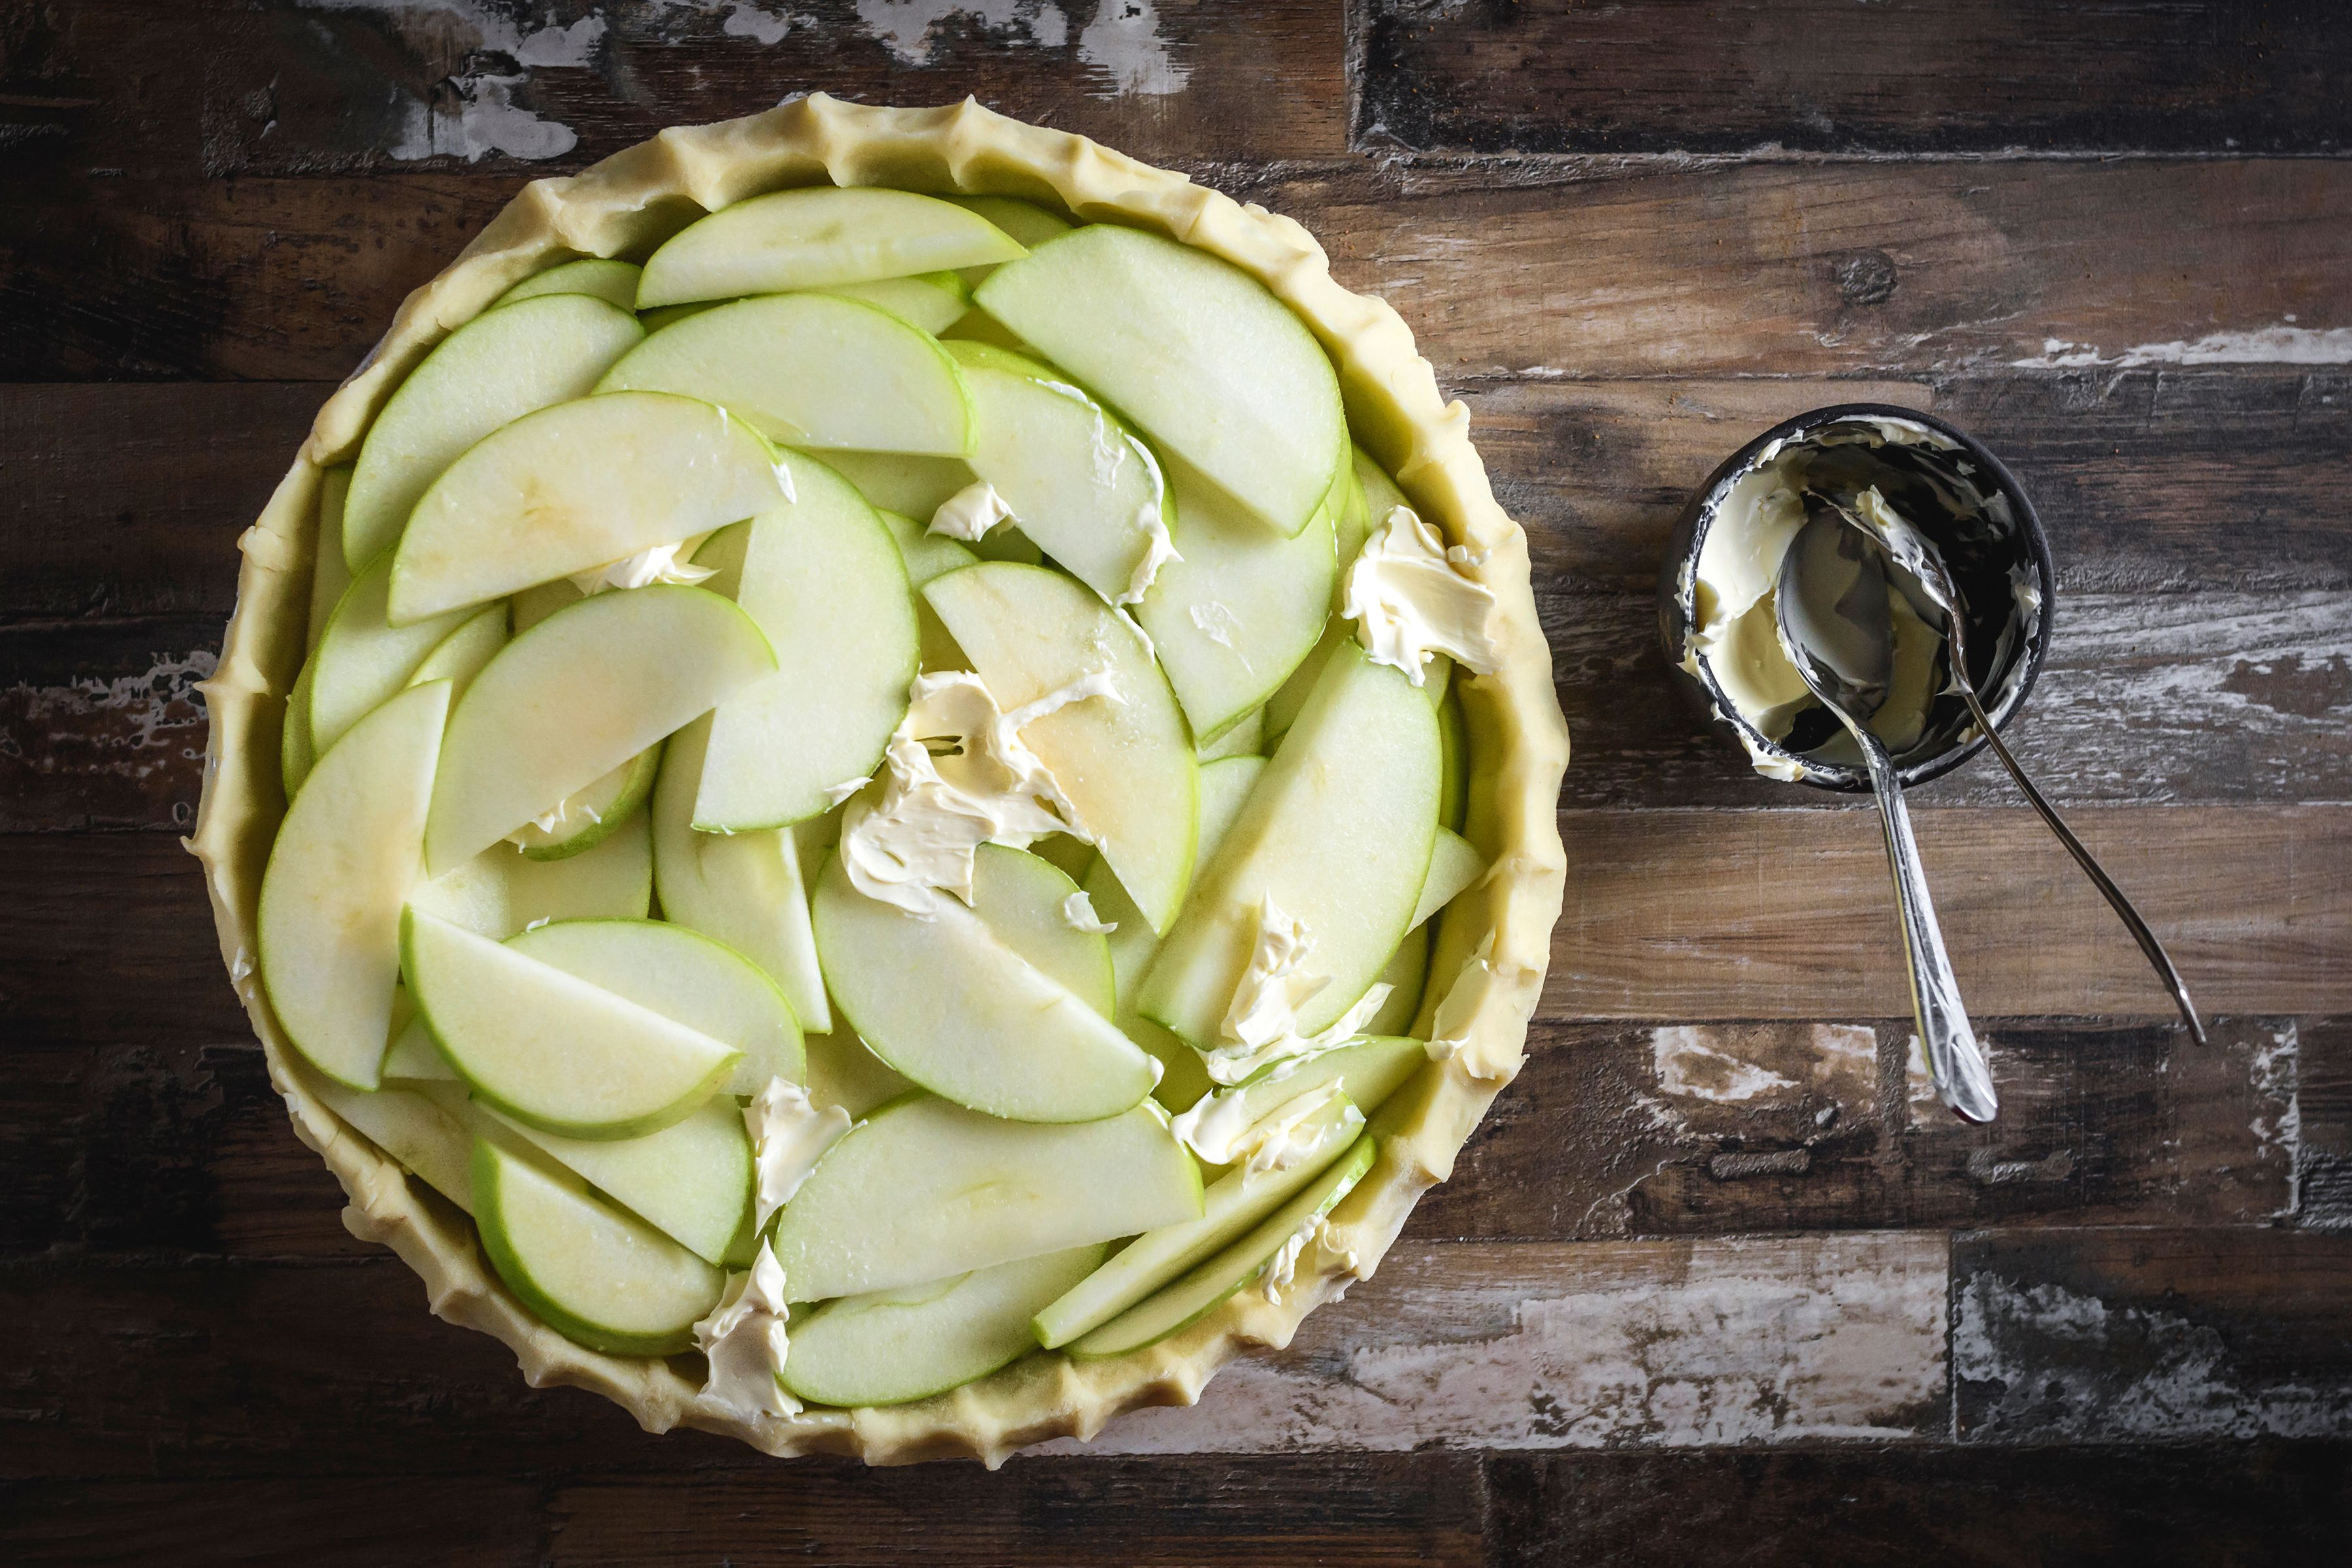 Place apple slices in crust